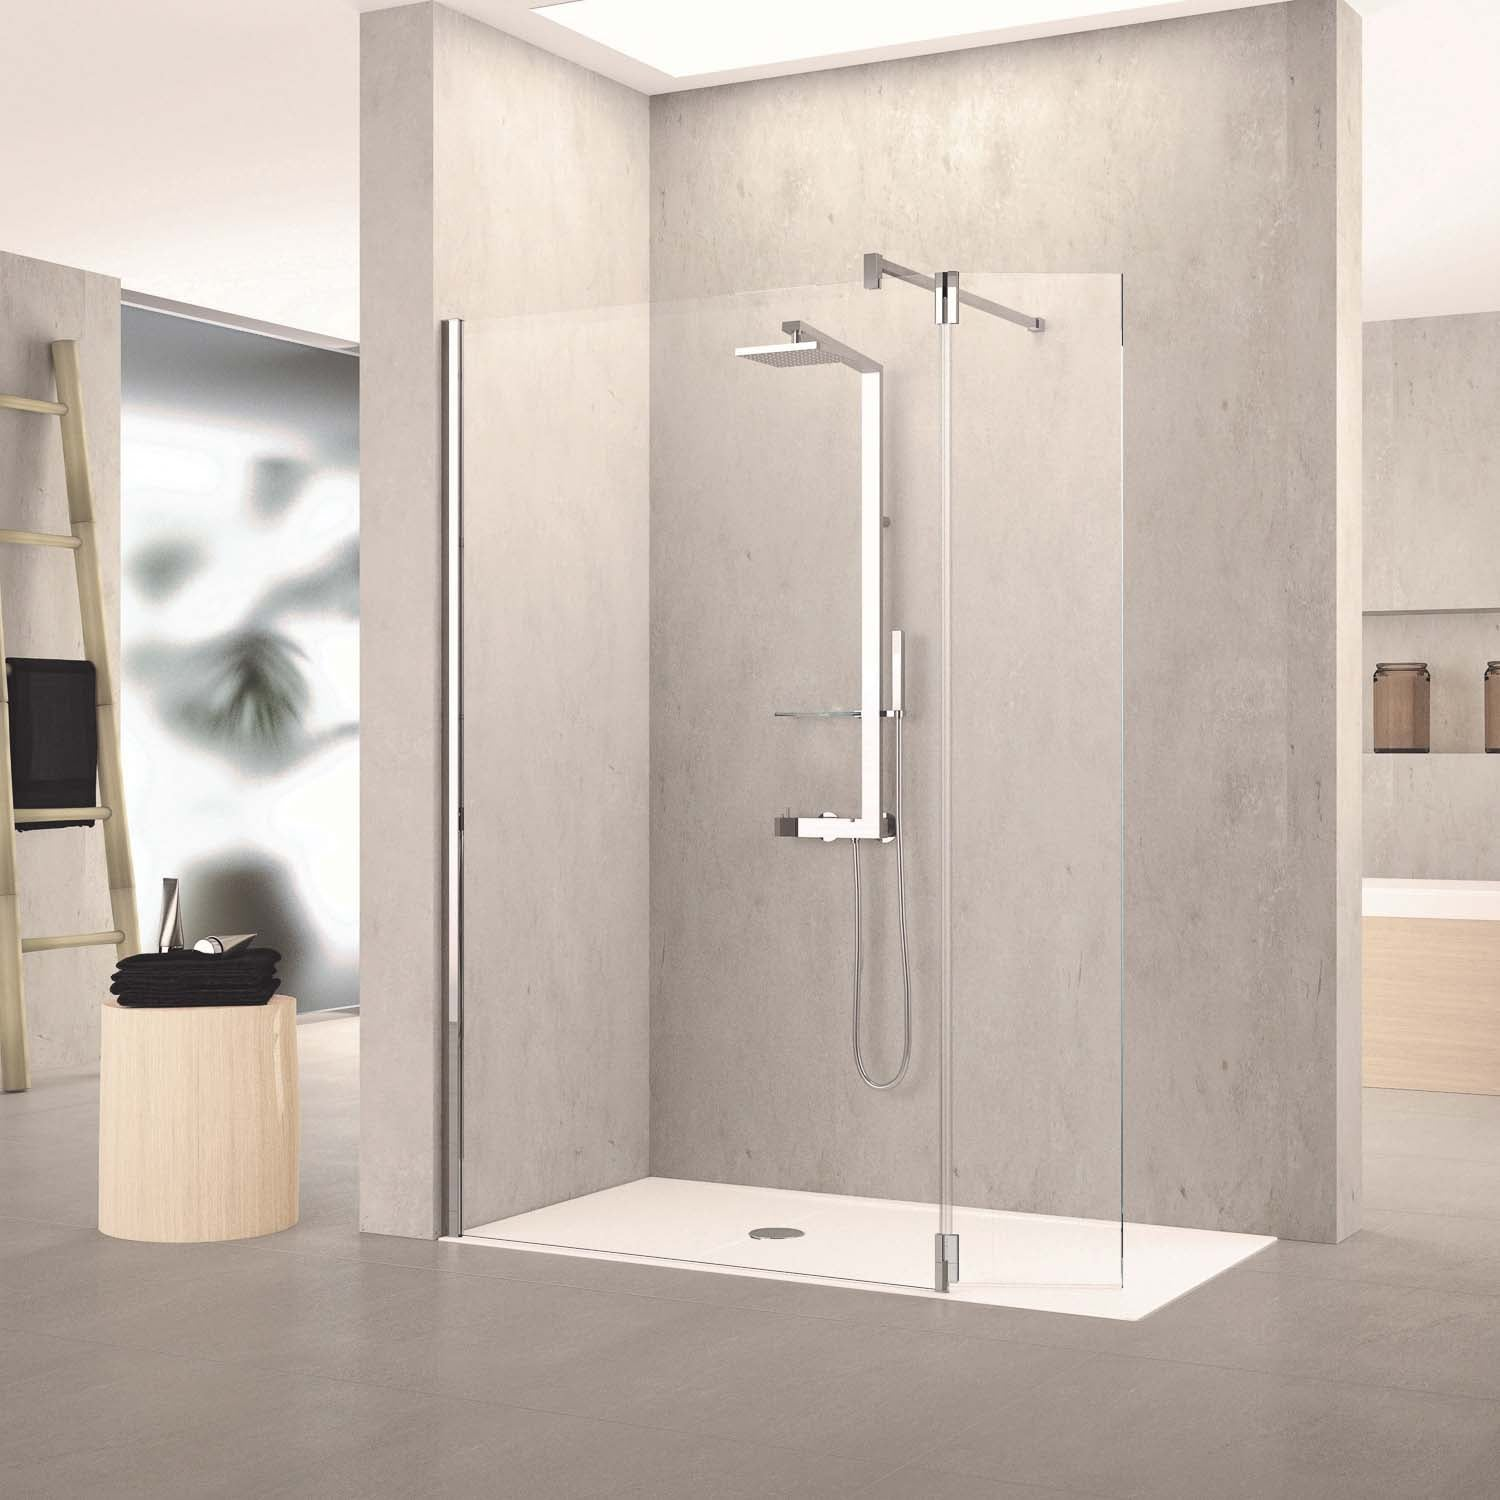 870-900mm Ergo Wet Room Screen Clear Glass with a chrome finish lifestyle image